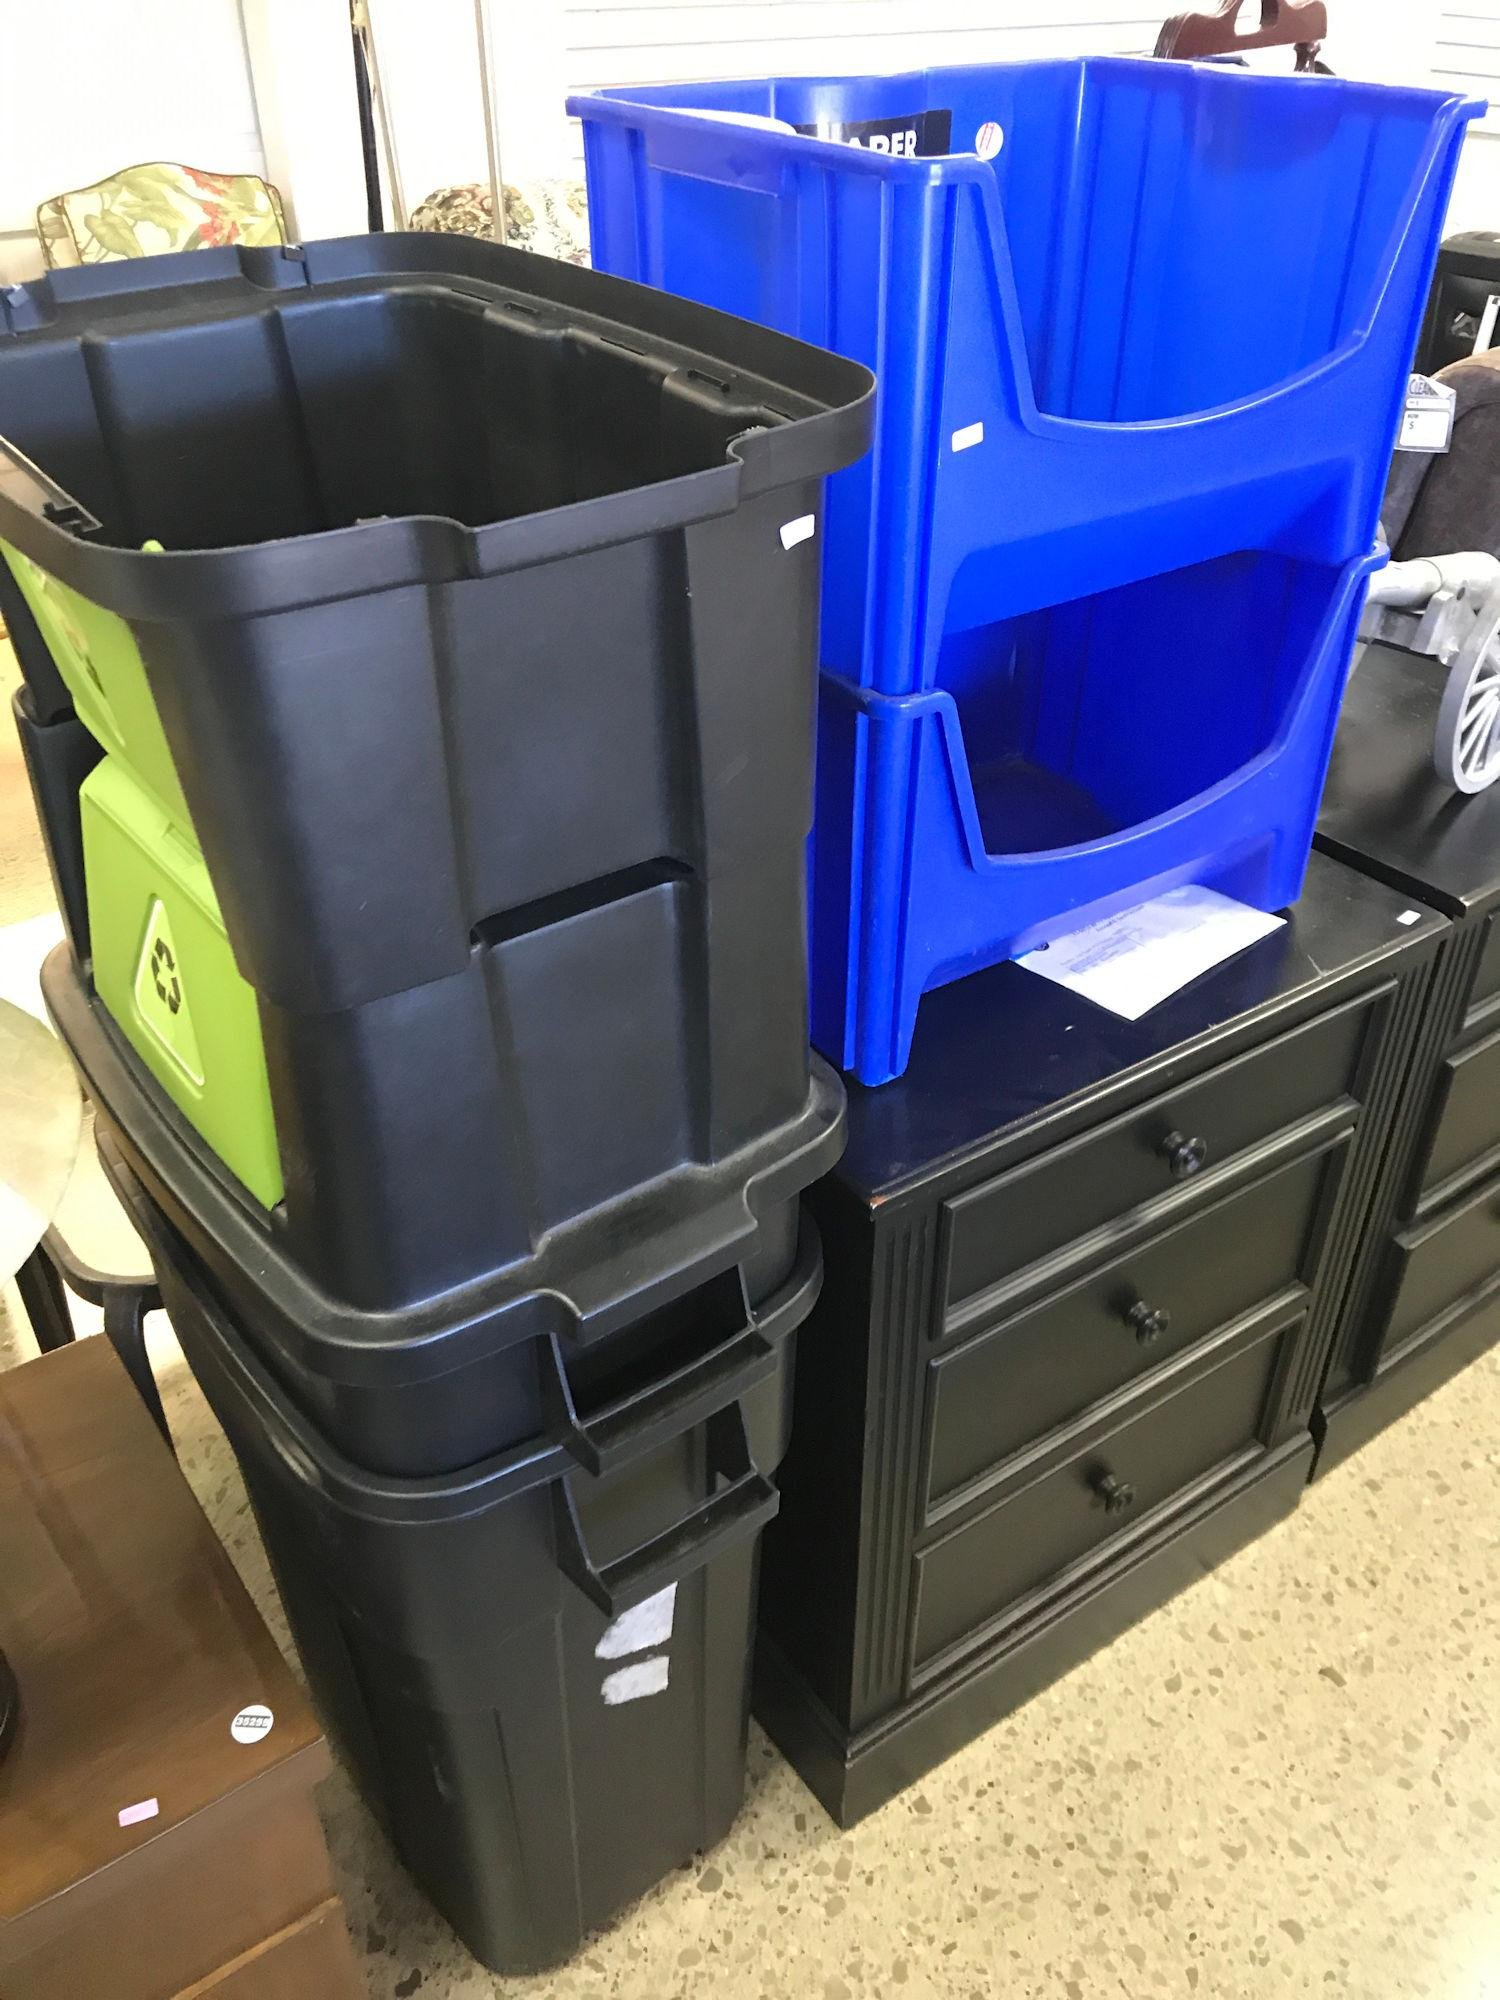 4 PLASTIC RECYCLING CONTAINERS